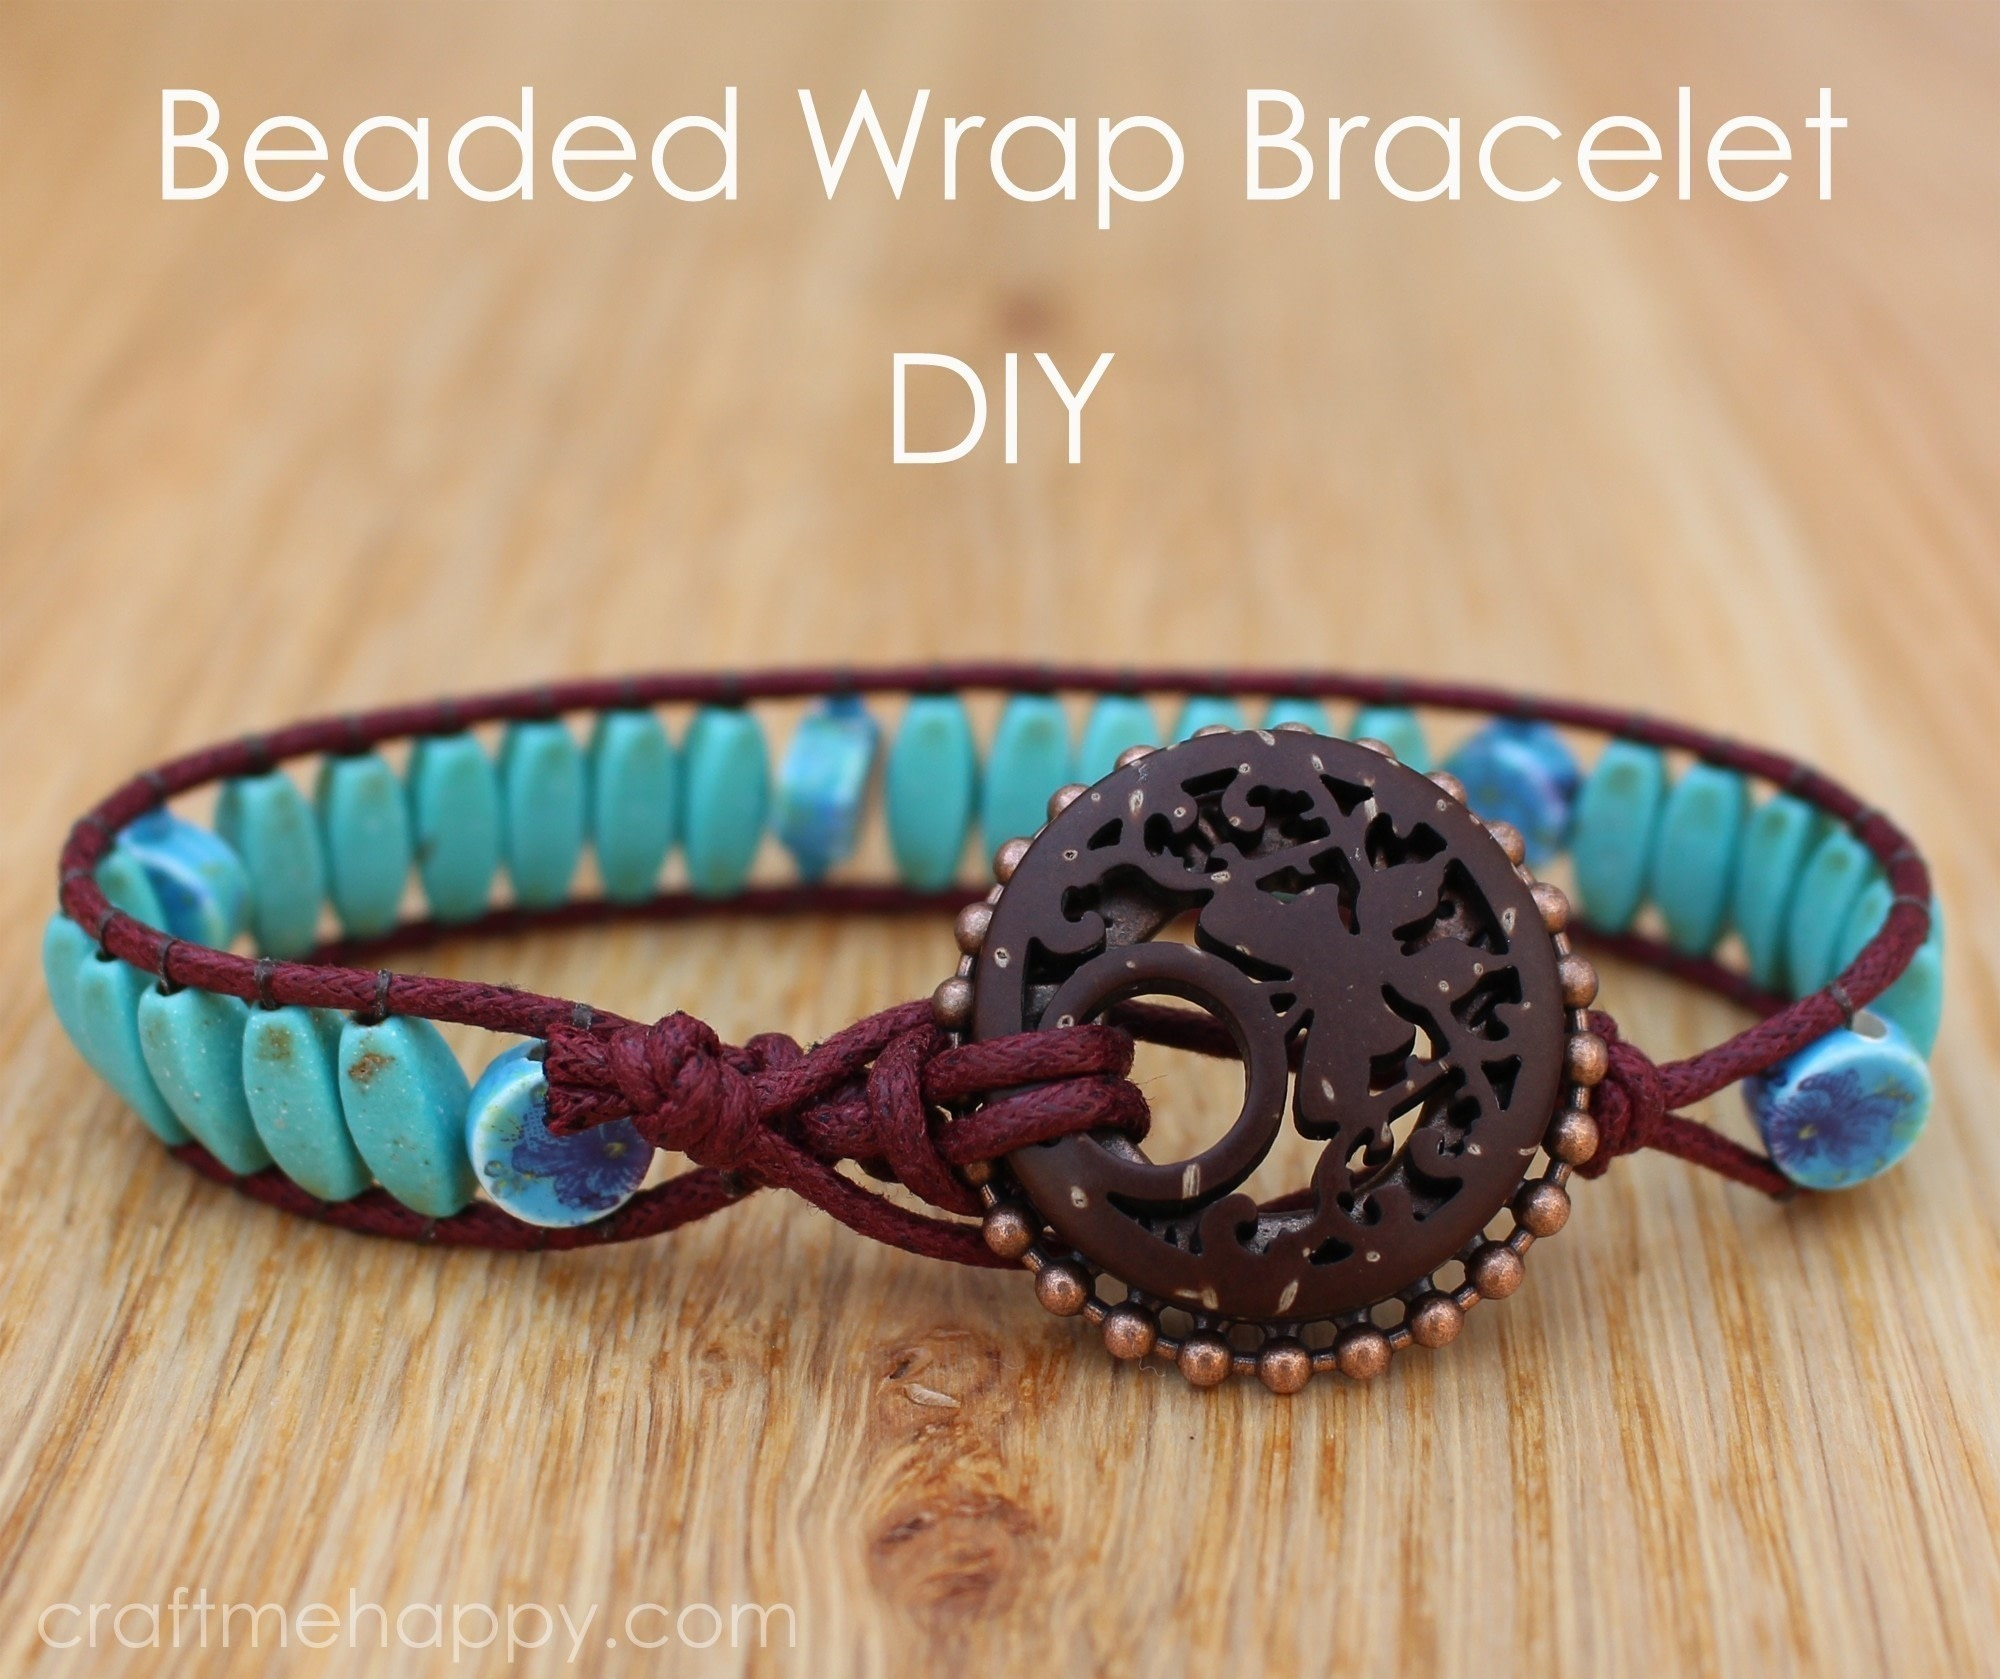 Beaded Wrap Bracelet Using Blueberry Cove Beads How To